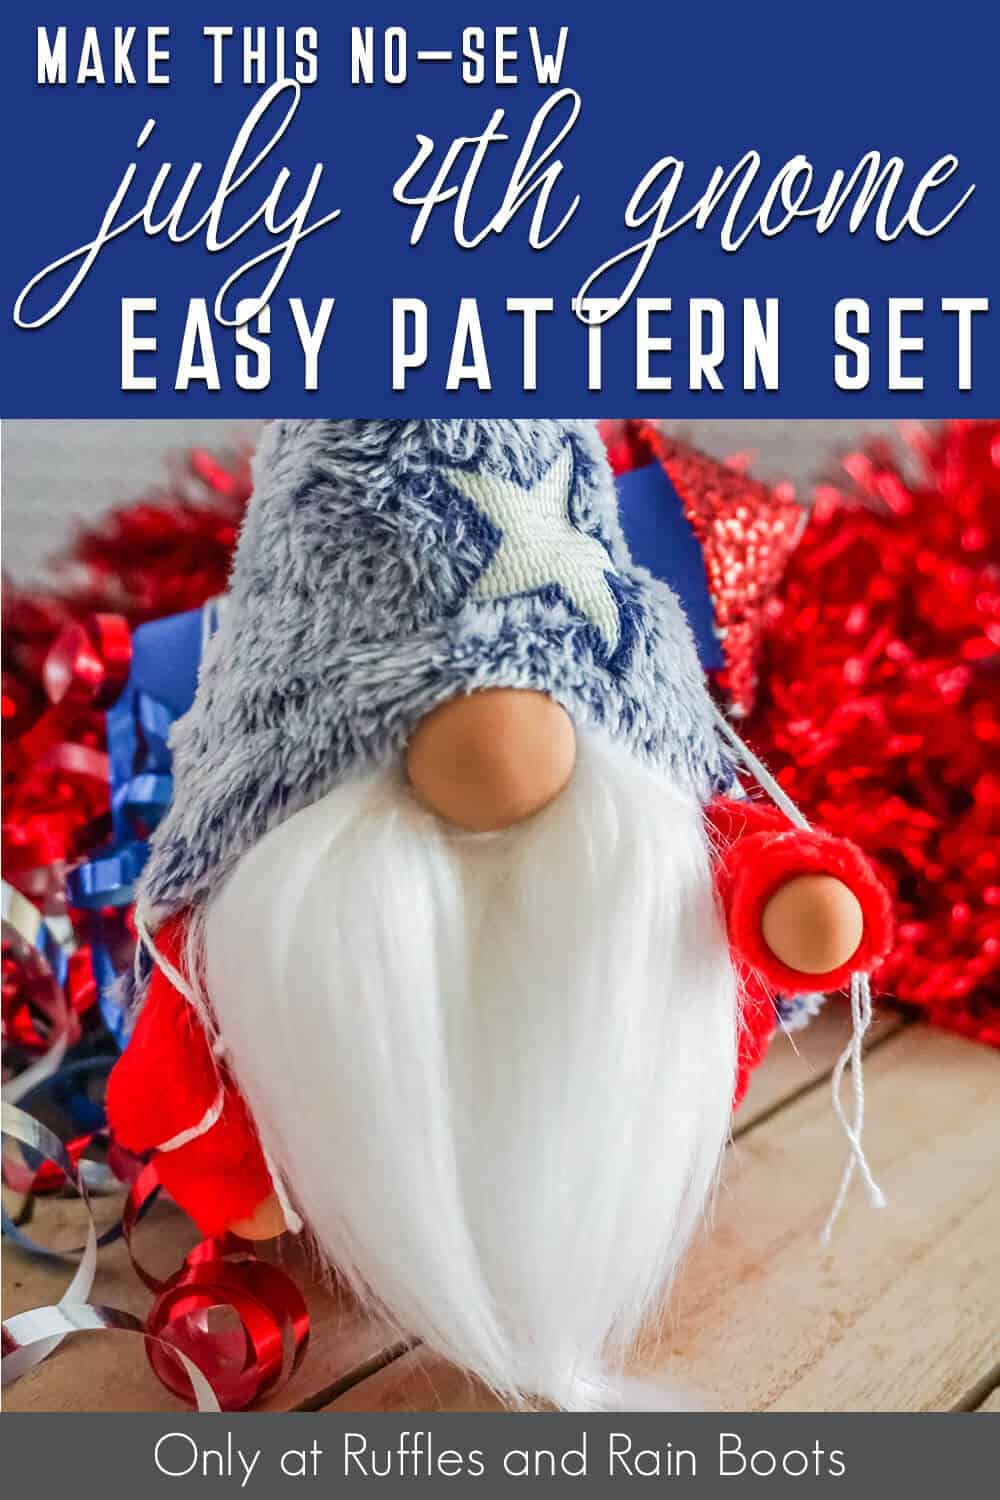 no-sew july 4th gnome pattern with text which reads make this no-sew july 4th gnome easy pattern set